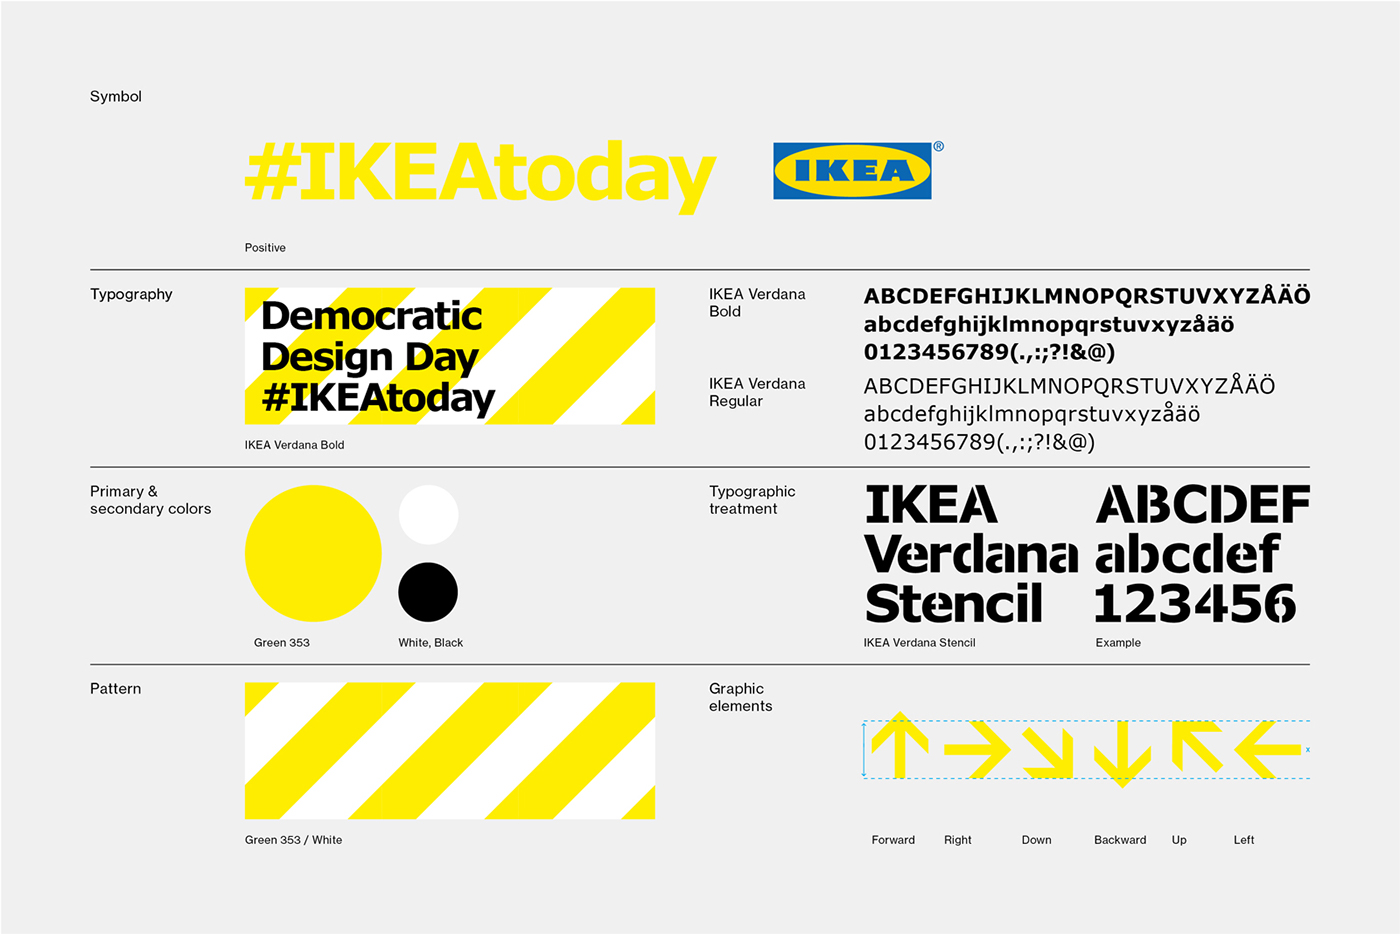 ikea brand Brandcolors was created in july 2012 by me (galen gidman) as a fun side project the goal was to create a helpful reference for the brand color codes that i needed most often the goal was to create a helpful reference for the brand color codes that i needed most often.